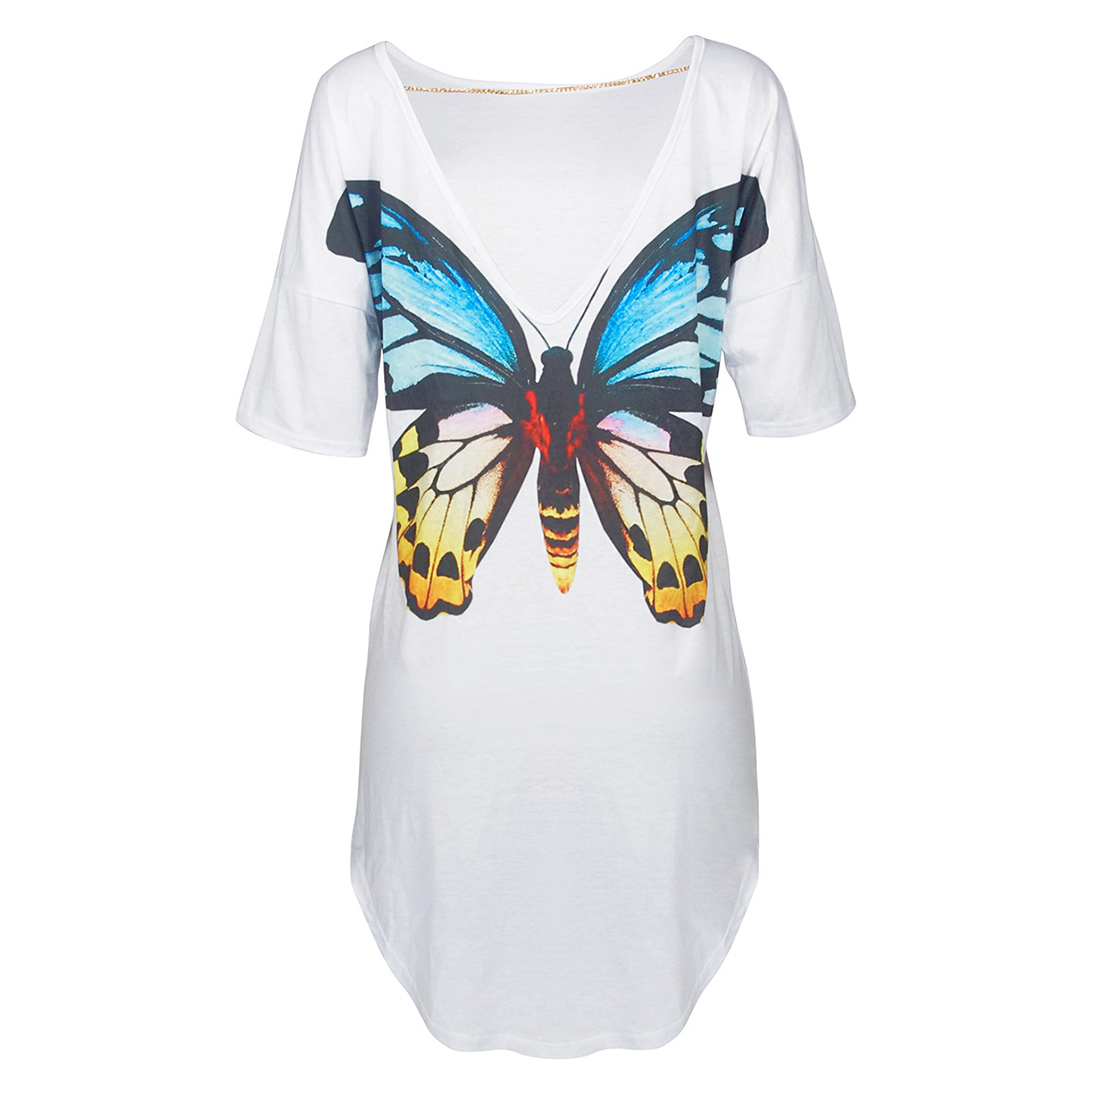 Casual Good Quality Women Summer Irregular Loose Short Sleeve Tops Tee Shirts Animals Butterfly Printed T-shirts